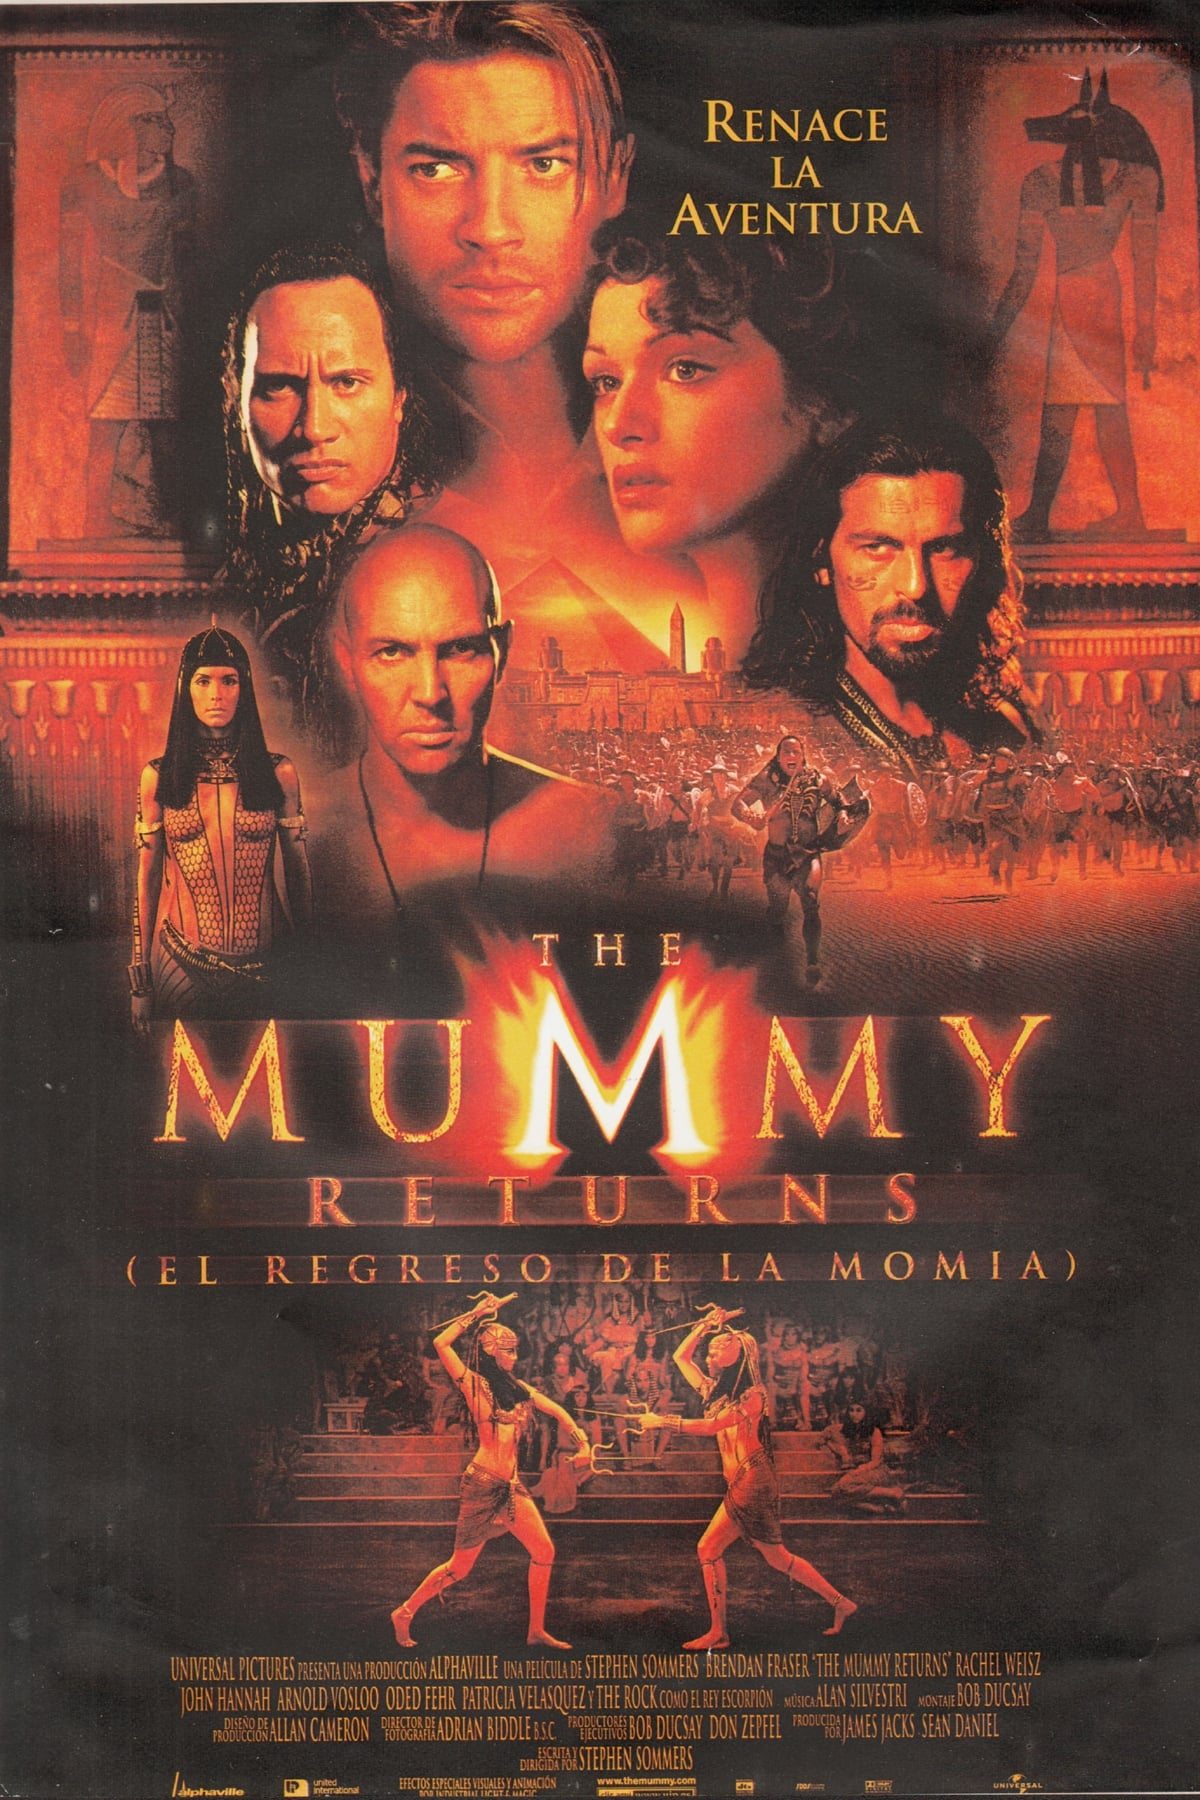 the mummy returns essay Watch the mummy returns (2001) full movie for free, plot: the mummified body of imhotep is shipped to a museum in london, where he once again wakes and begins his campaign of rage and terror the mummy returns (2001) server selection.